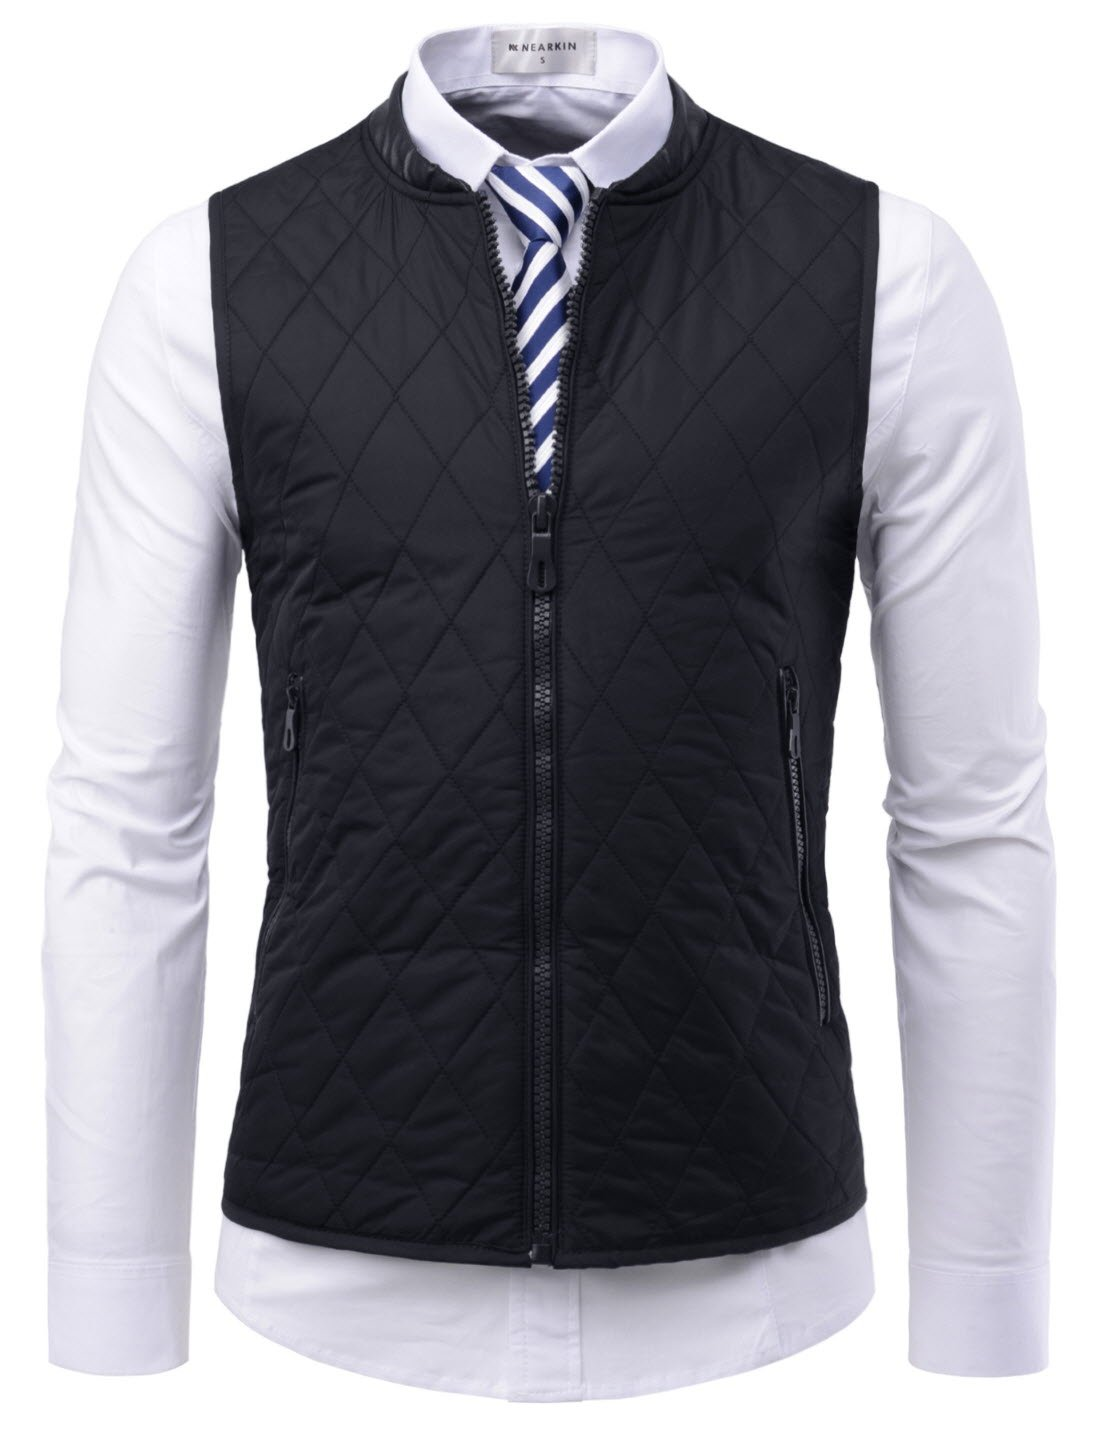 NEARKIN (NKNKPVE1) Mens Daily light warmer Quilting Zip-up Slim fit Waistcoat BLACK US XS(Tag size S)